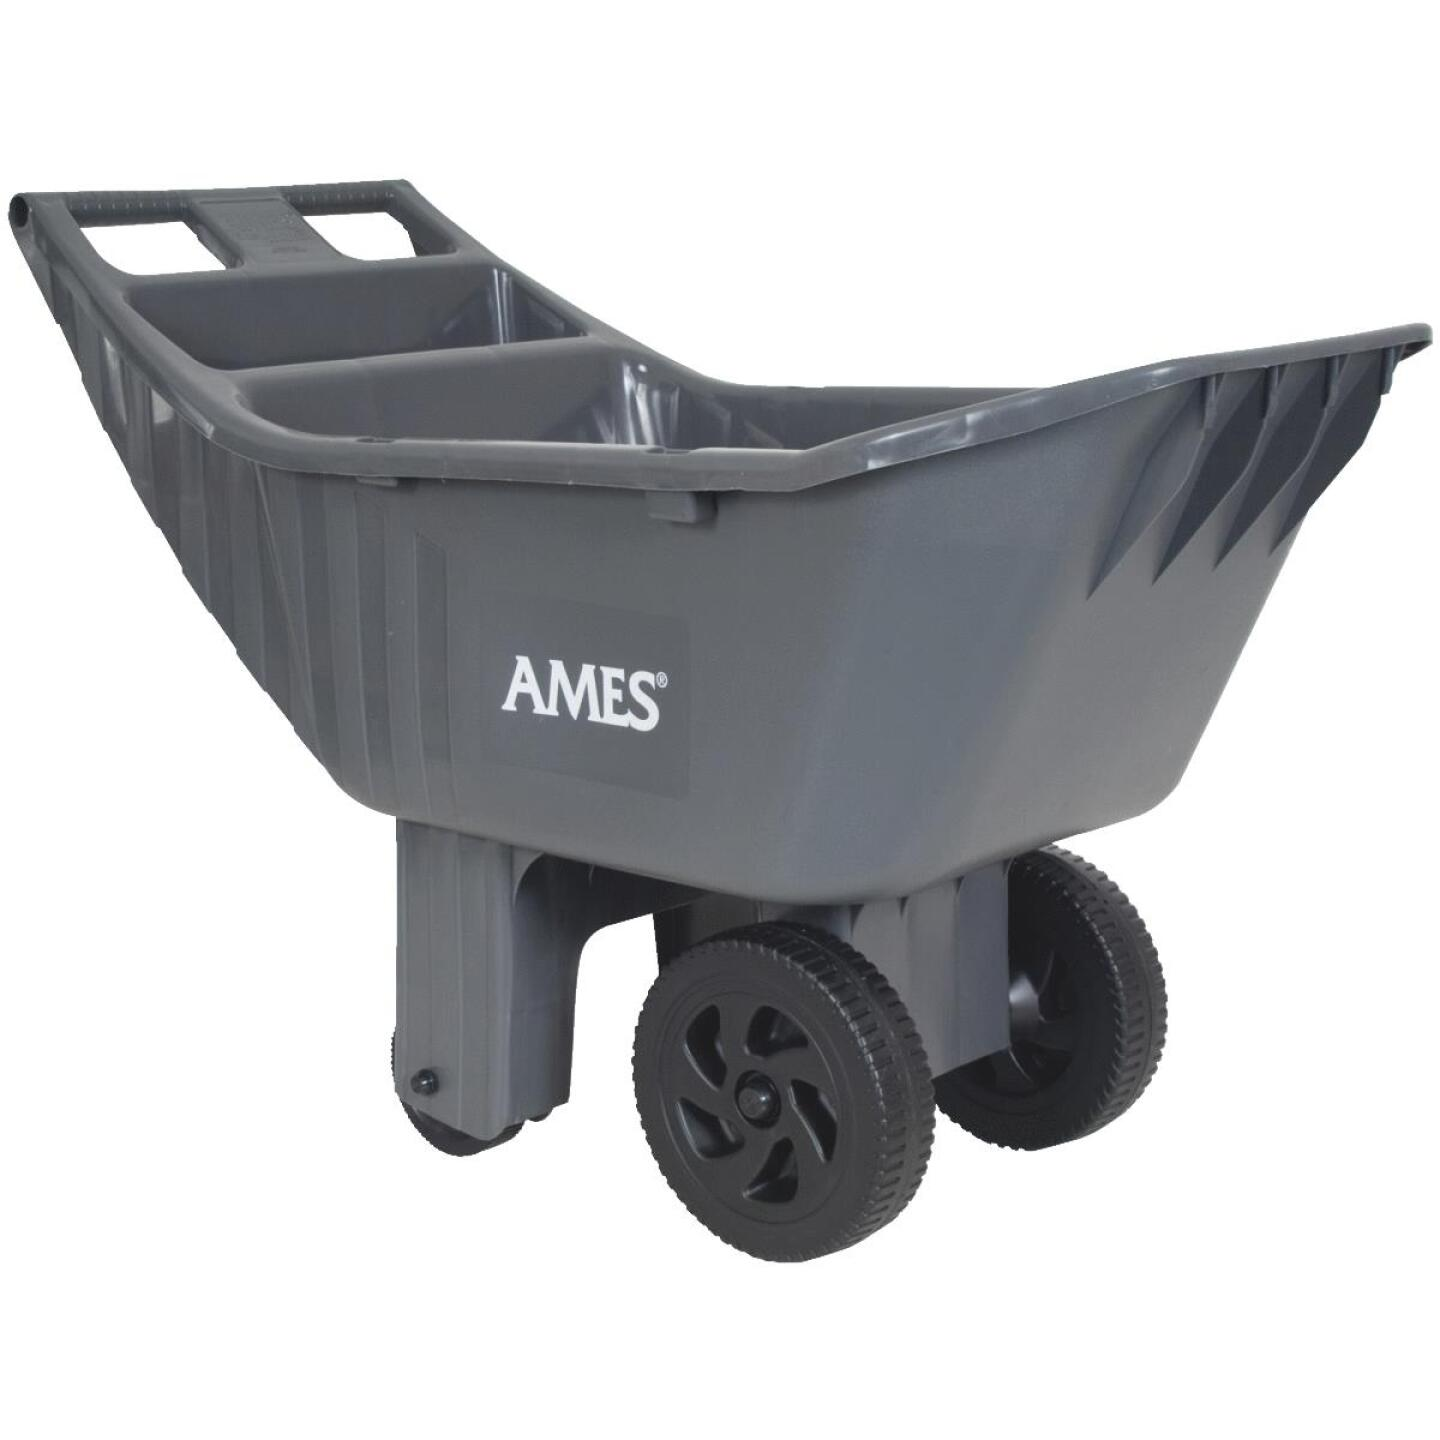 Ames Easy Roller 4 Cu. Ft. 250 Lb. Poly Garden Cart Image 1